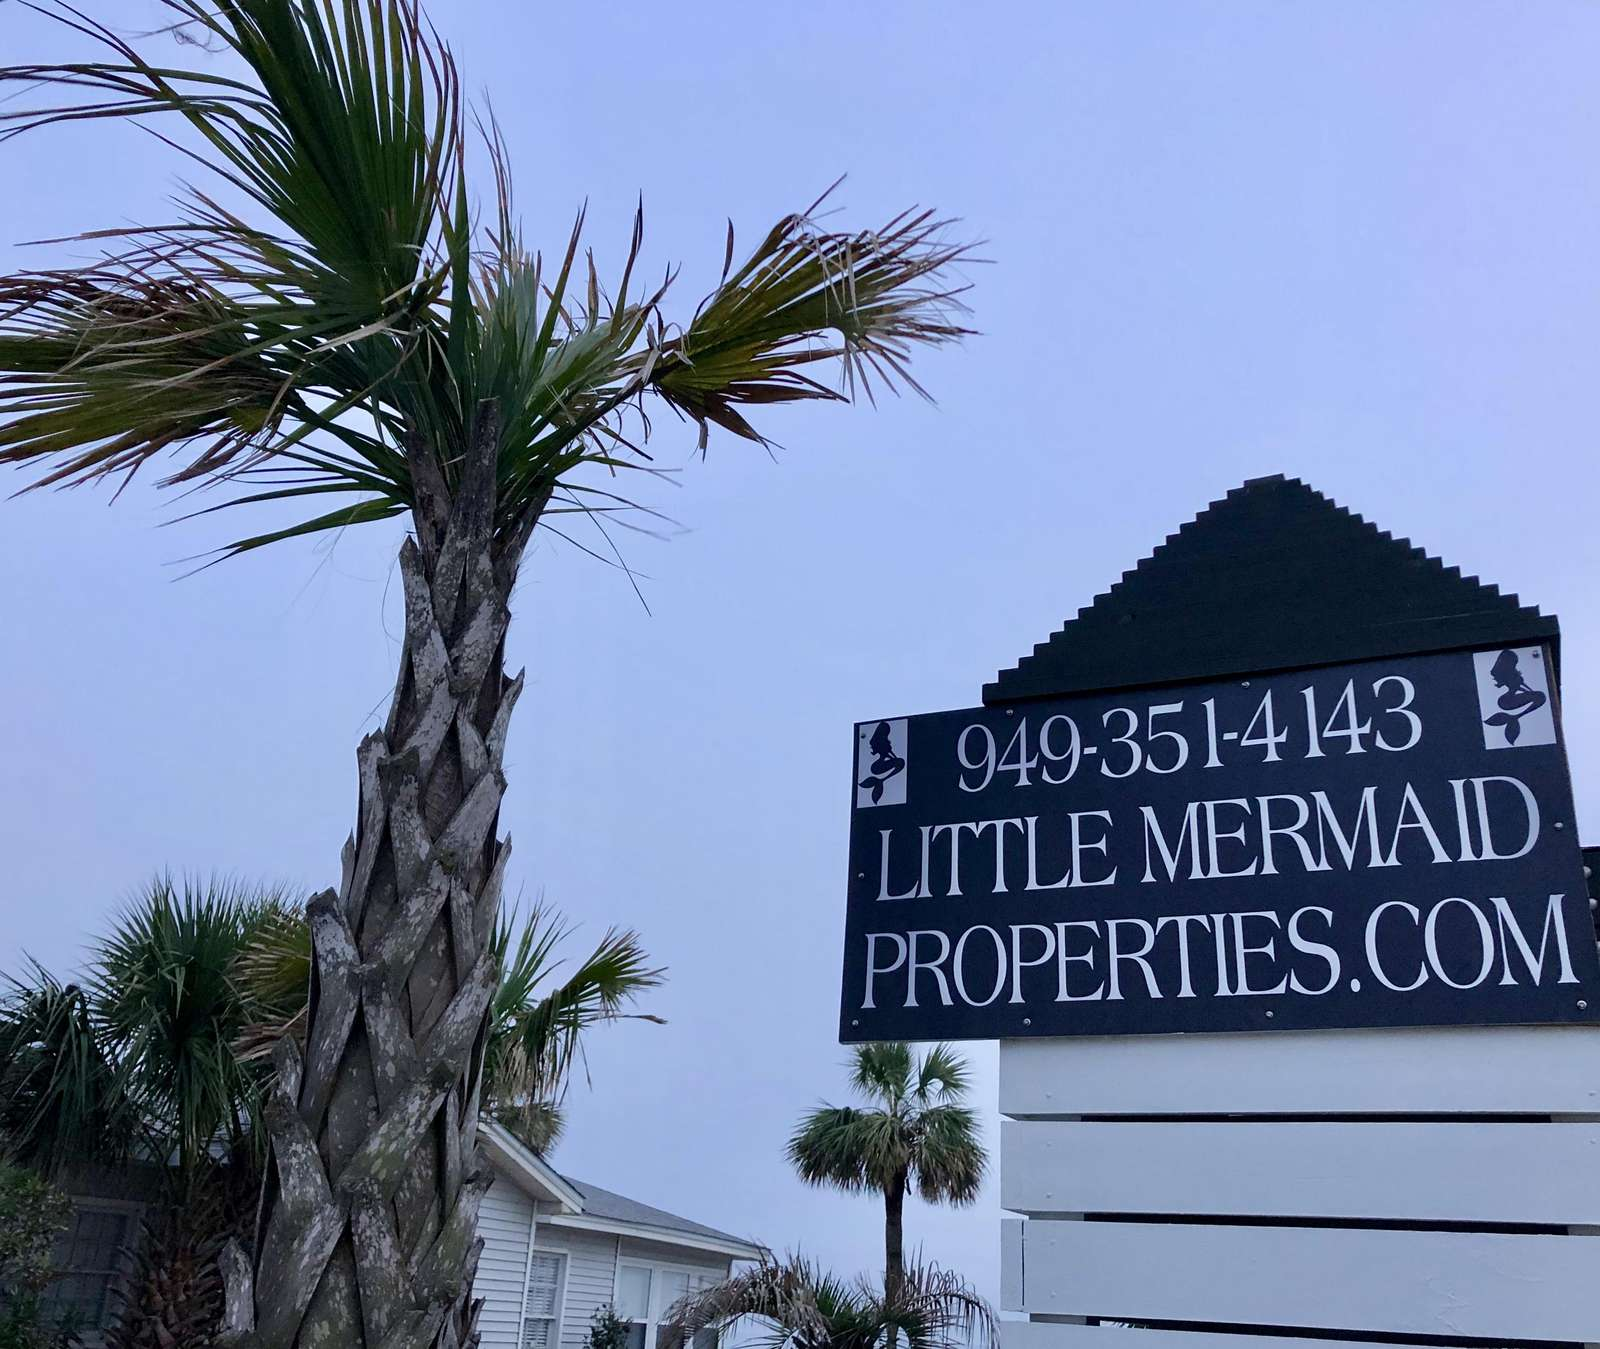 littlemermaidproperties.com. 949-351-4143